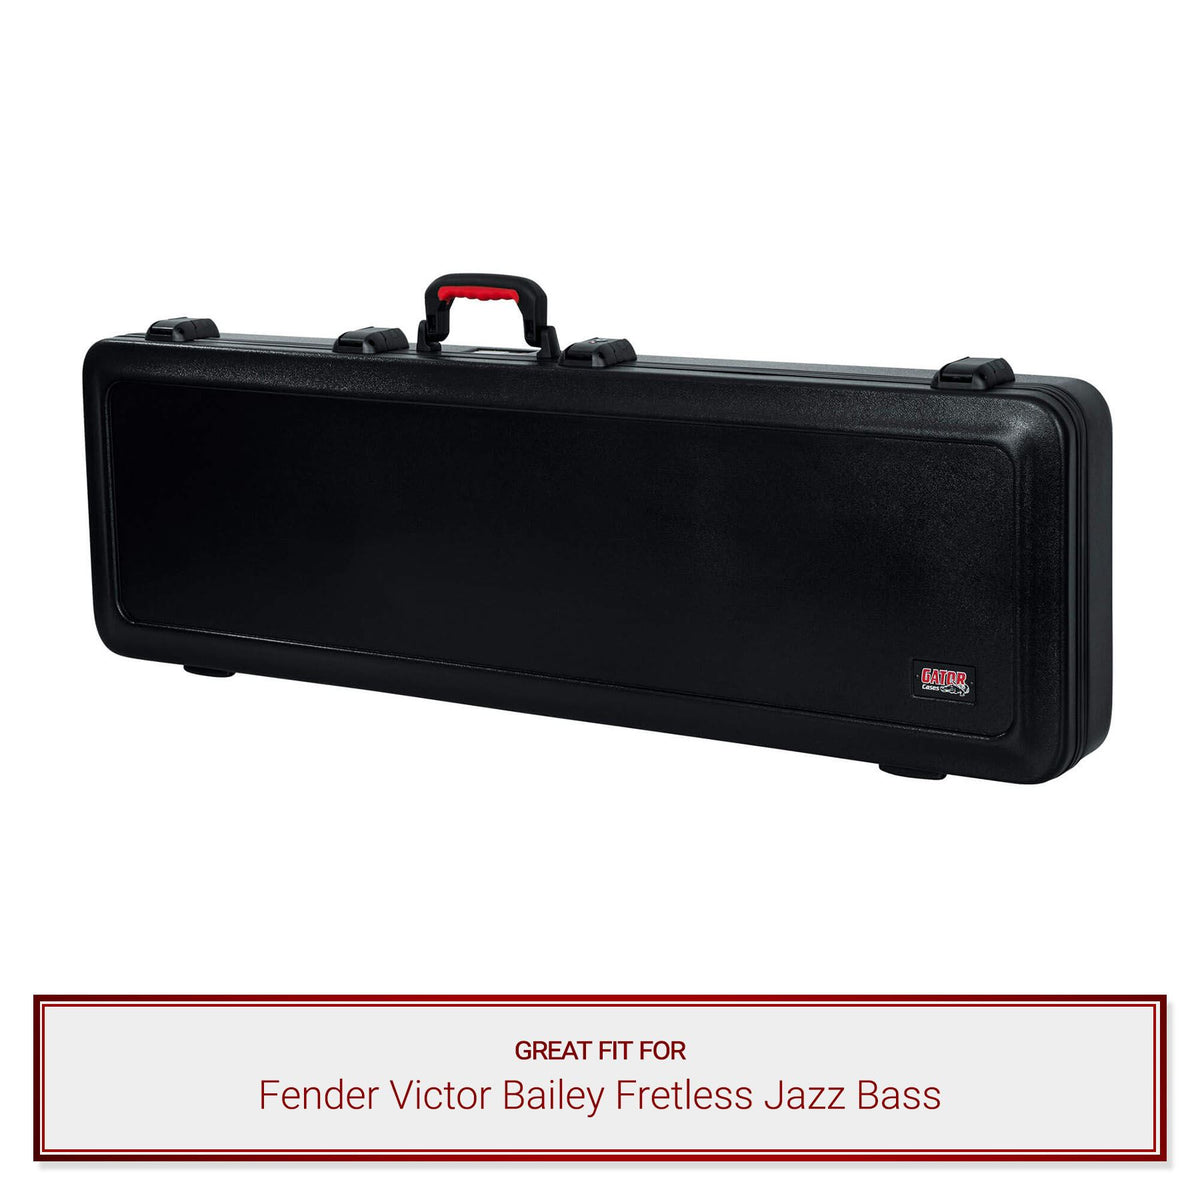 Gator ATA Bass Guitar Case fits Fender Victor Bailey Fretless Jazz Bass